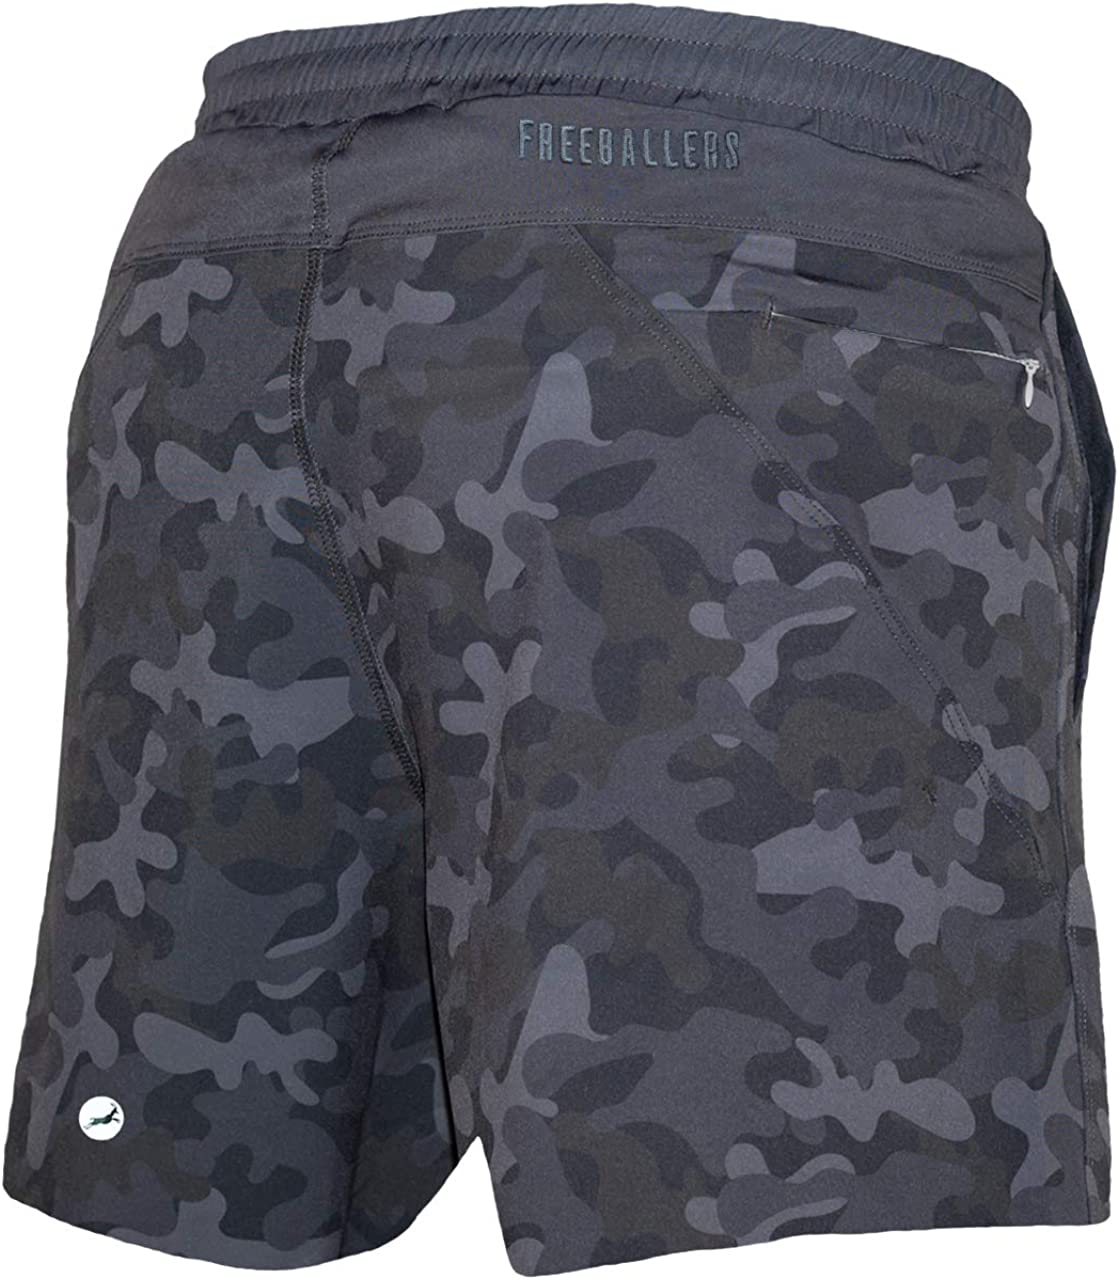 Meripex Apparel Mens Freeballer 8 Athletic Gym Performance Sport Shorts Perfect for Running and Yoga Weightlifting